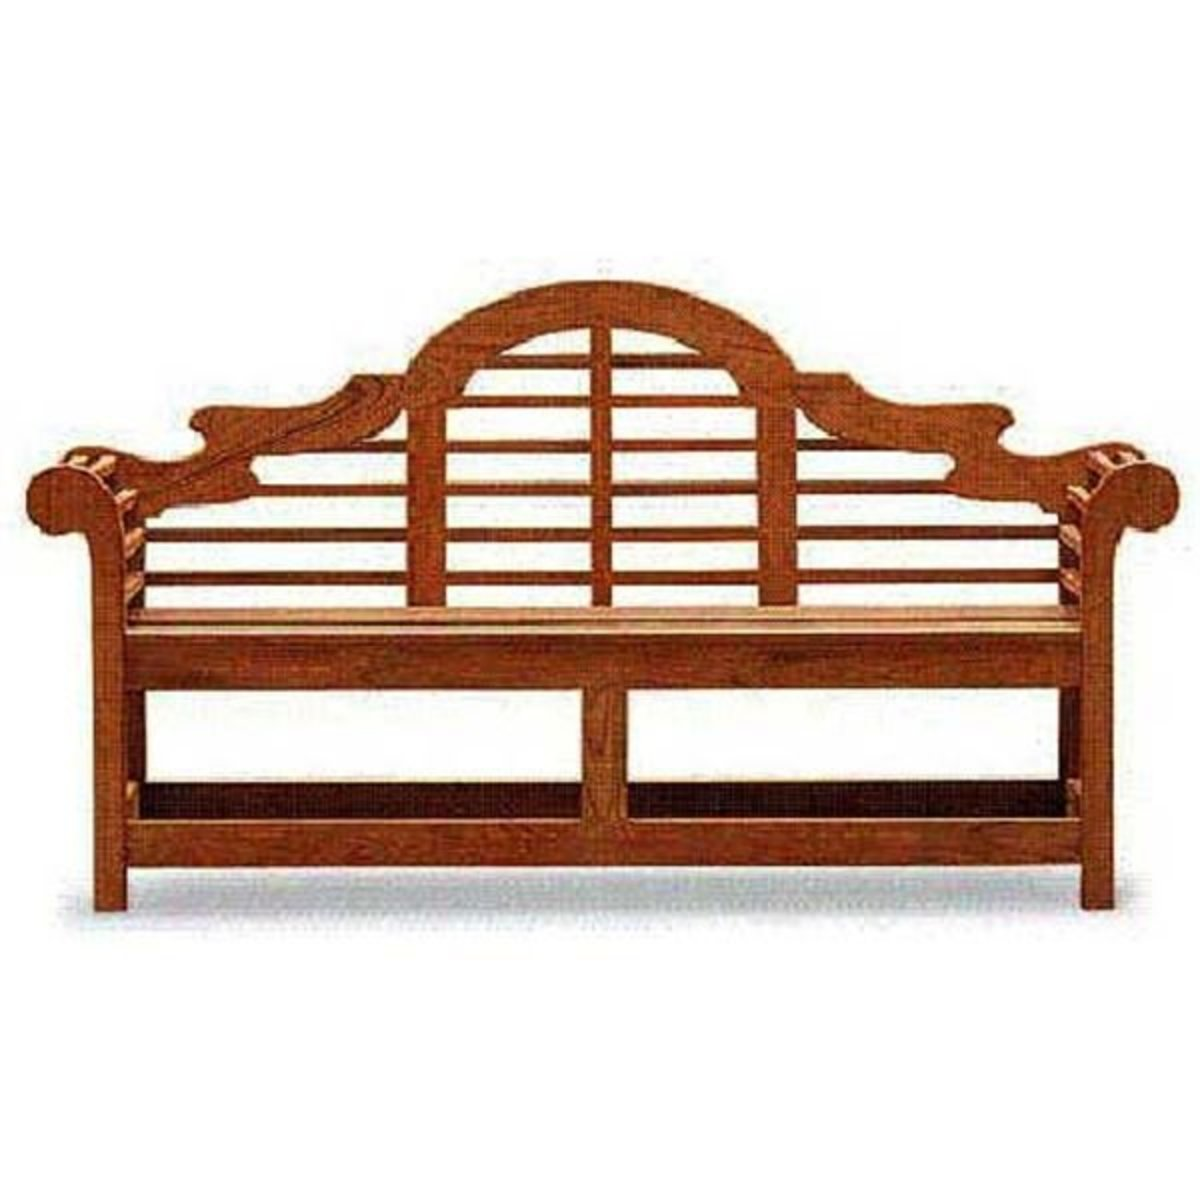 American Furniture Design Woodworking Project Paper Plan To Build The Lutyens Garden Bench Afd279